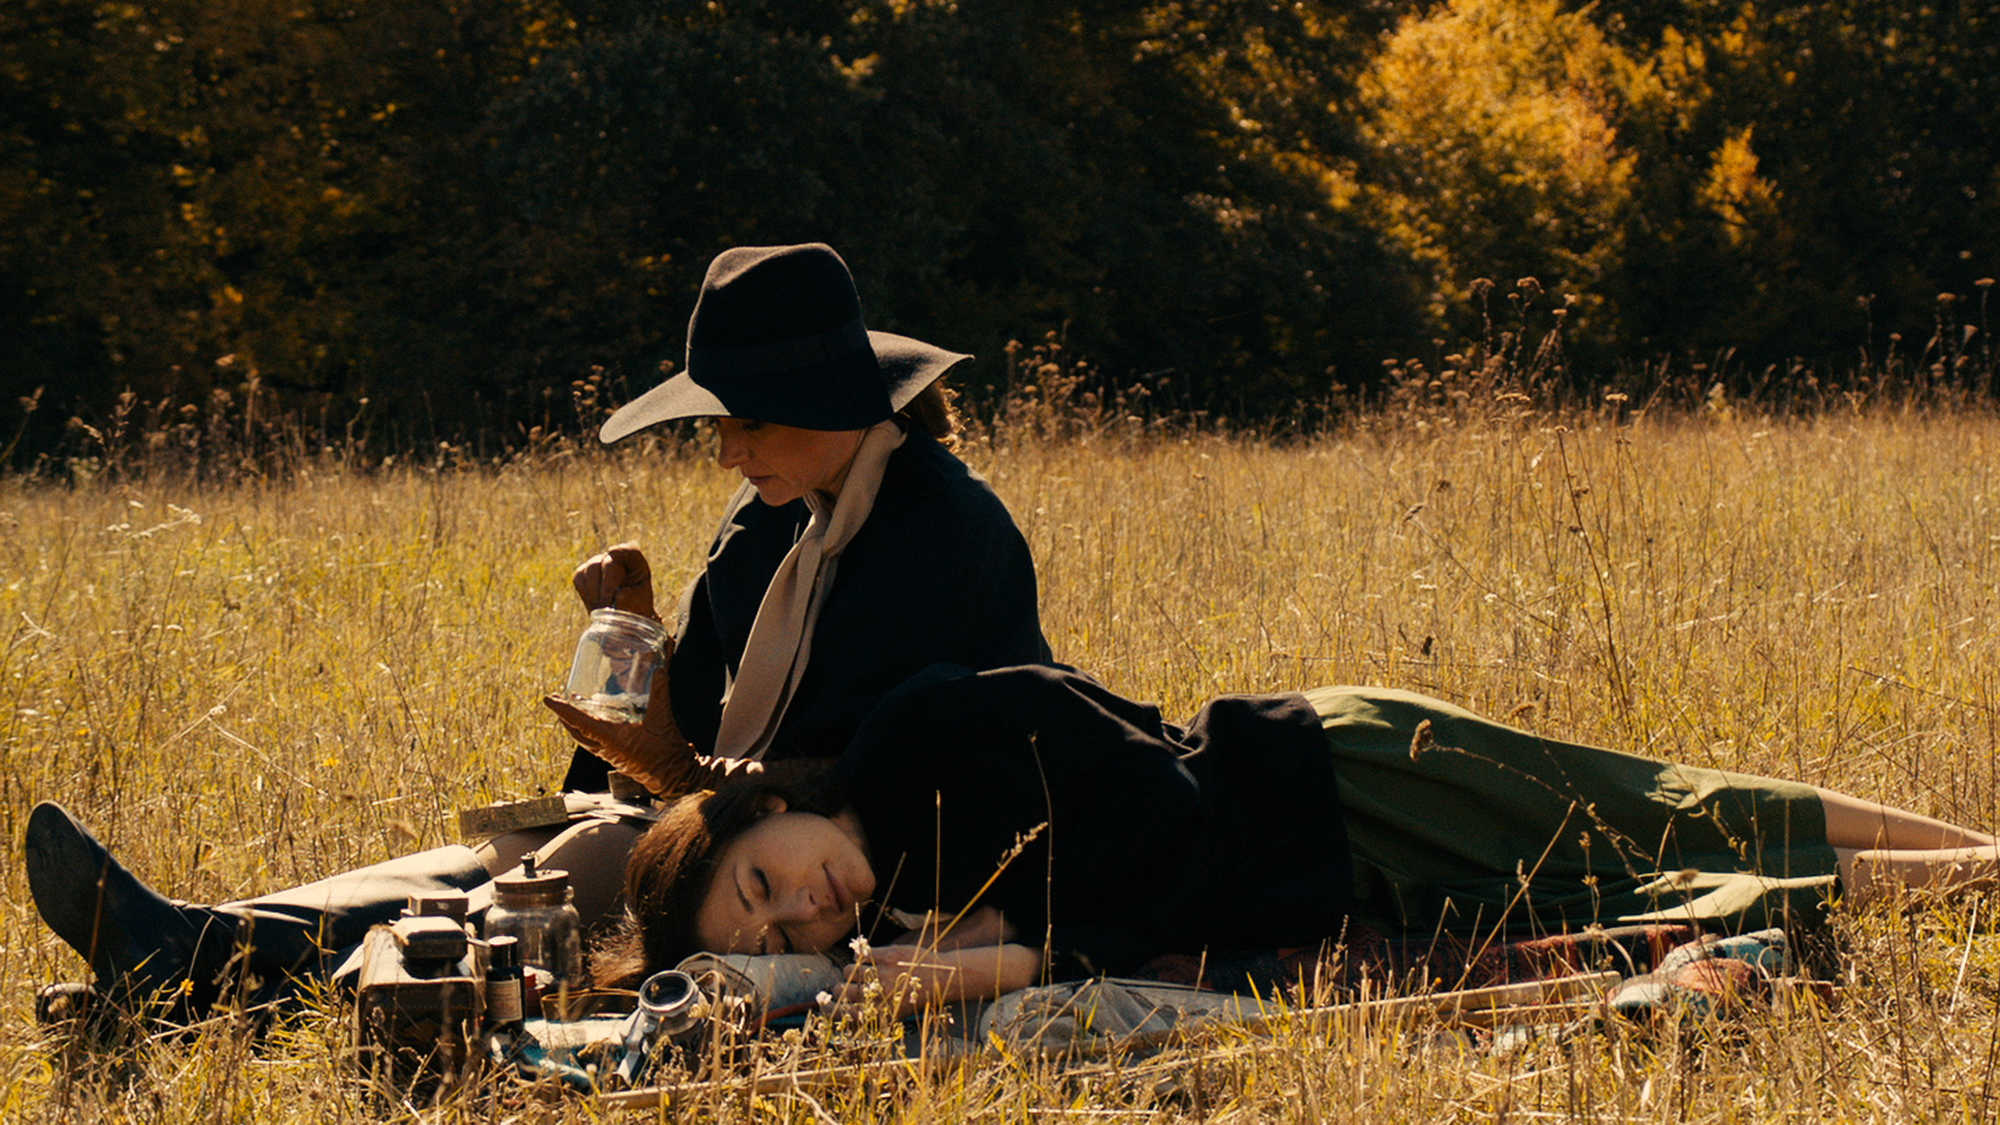 The Duke of Burgundy (image 3)